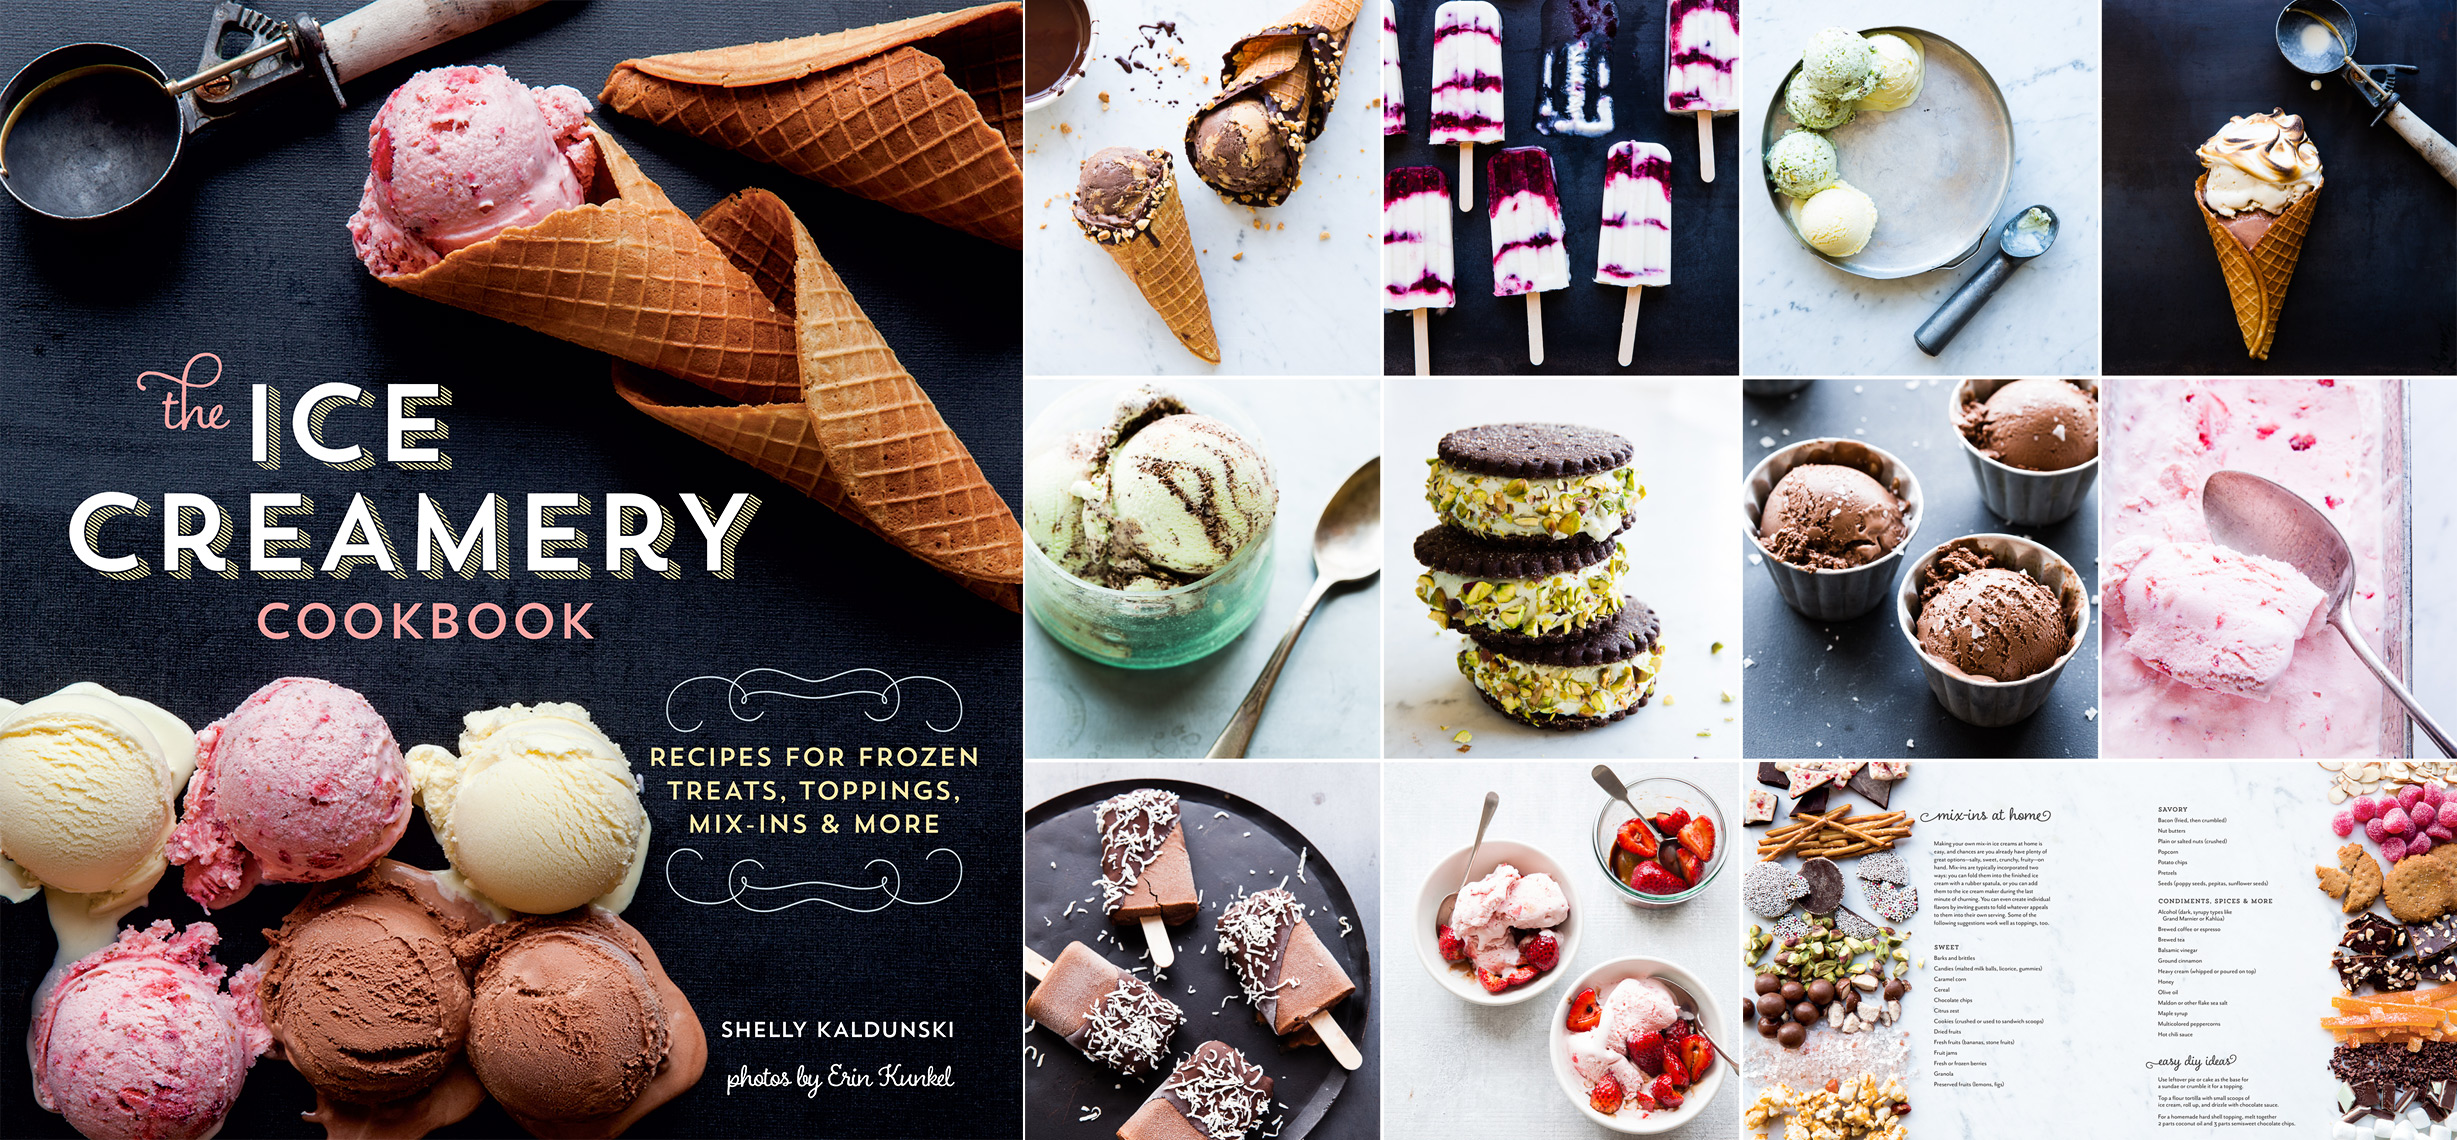 WilliamsSonoma_IceCreamery